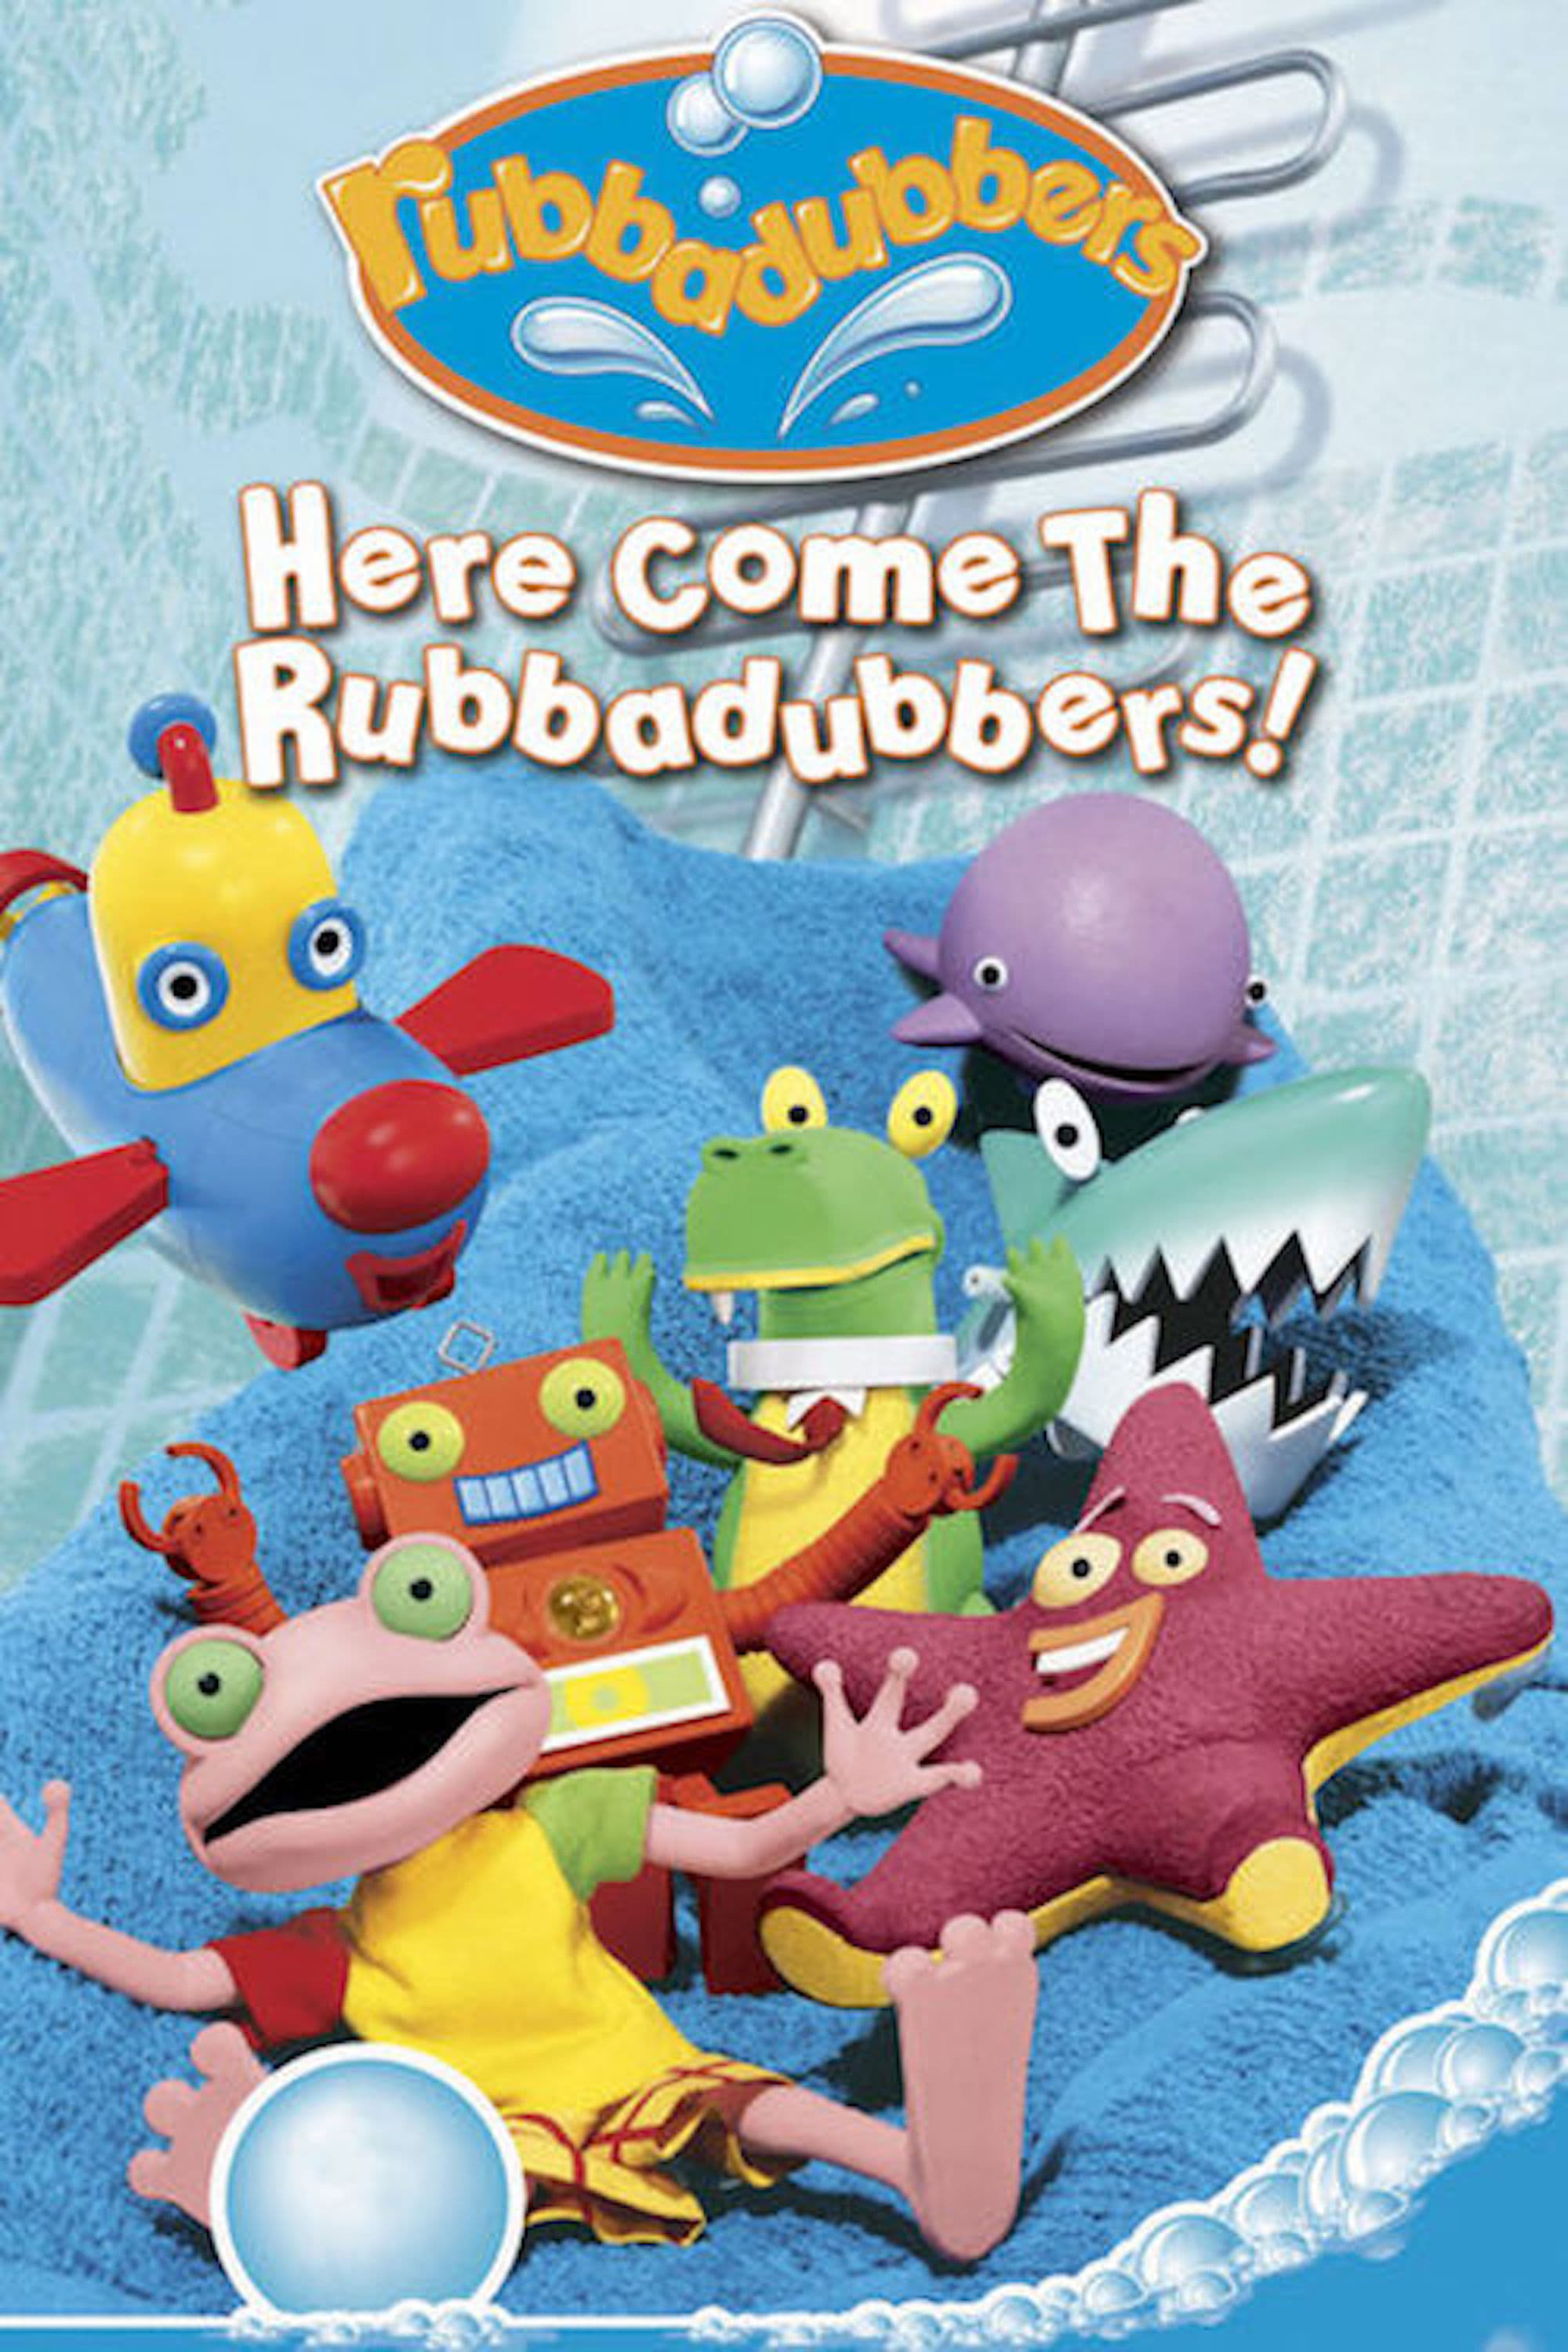 watch Rubbadubbers: Here Come the Rubbadubbers! 2004 online free